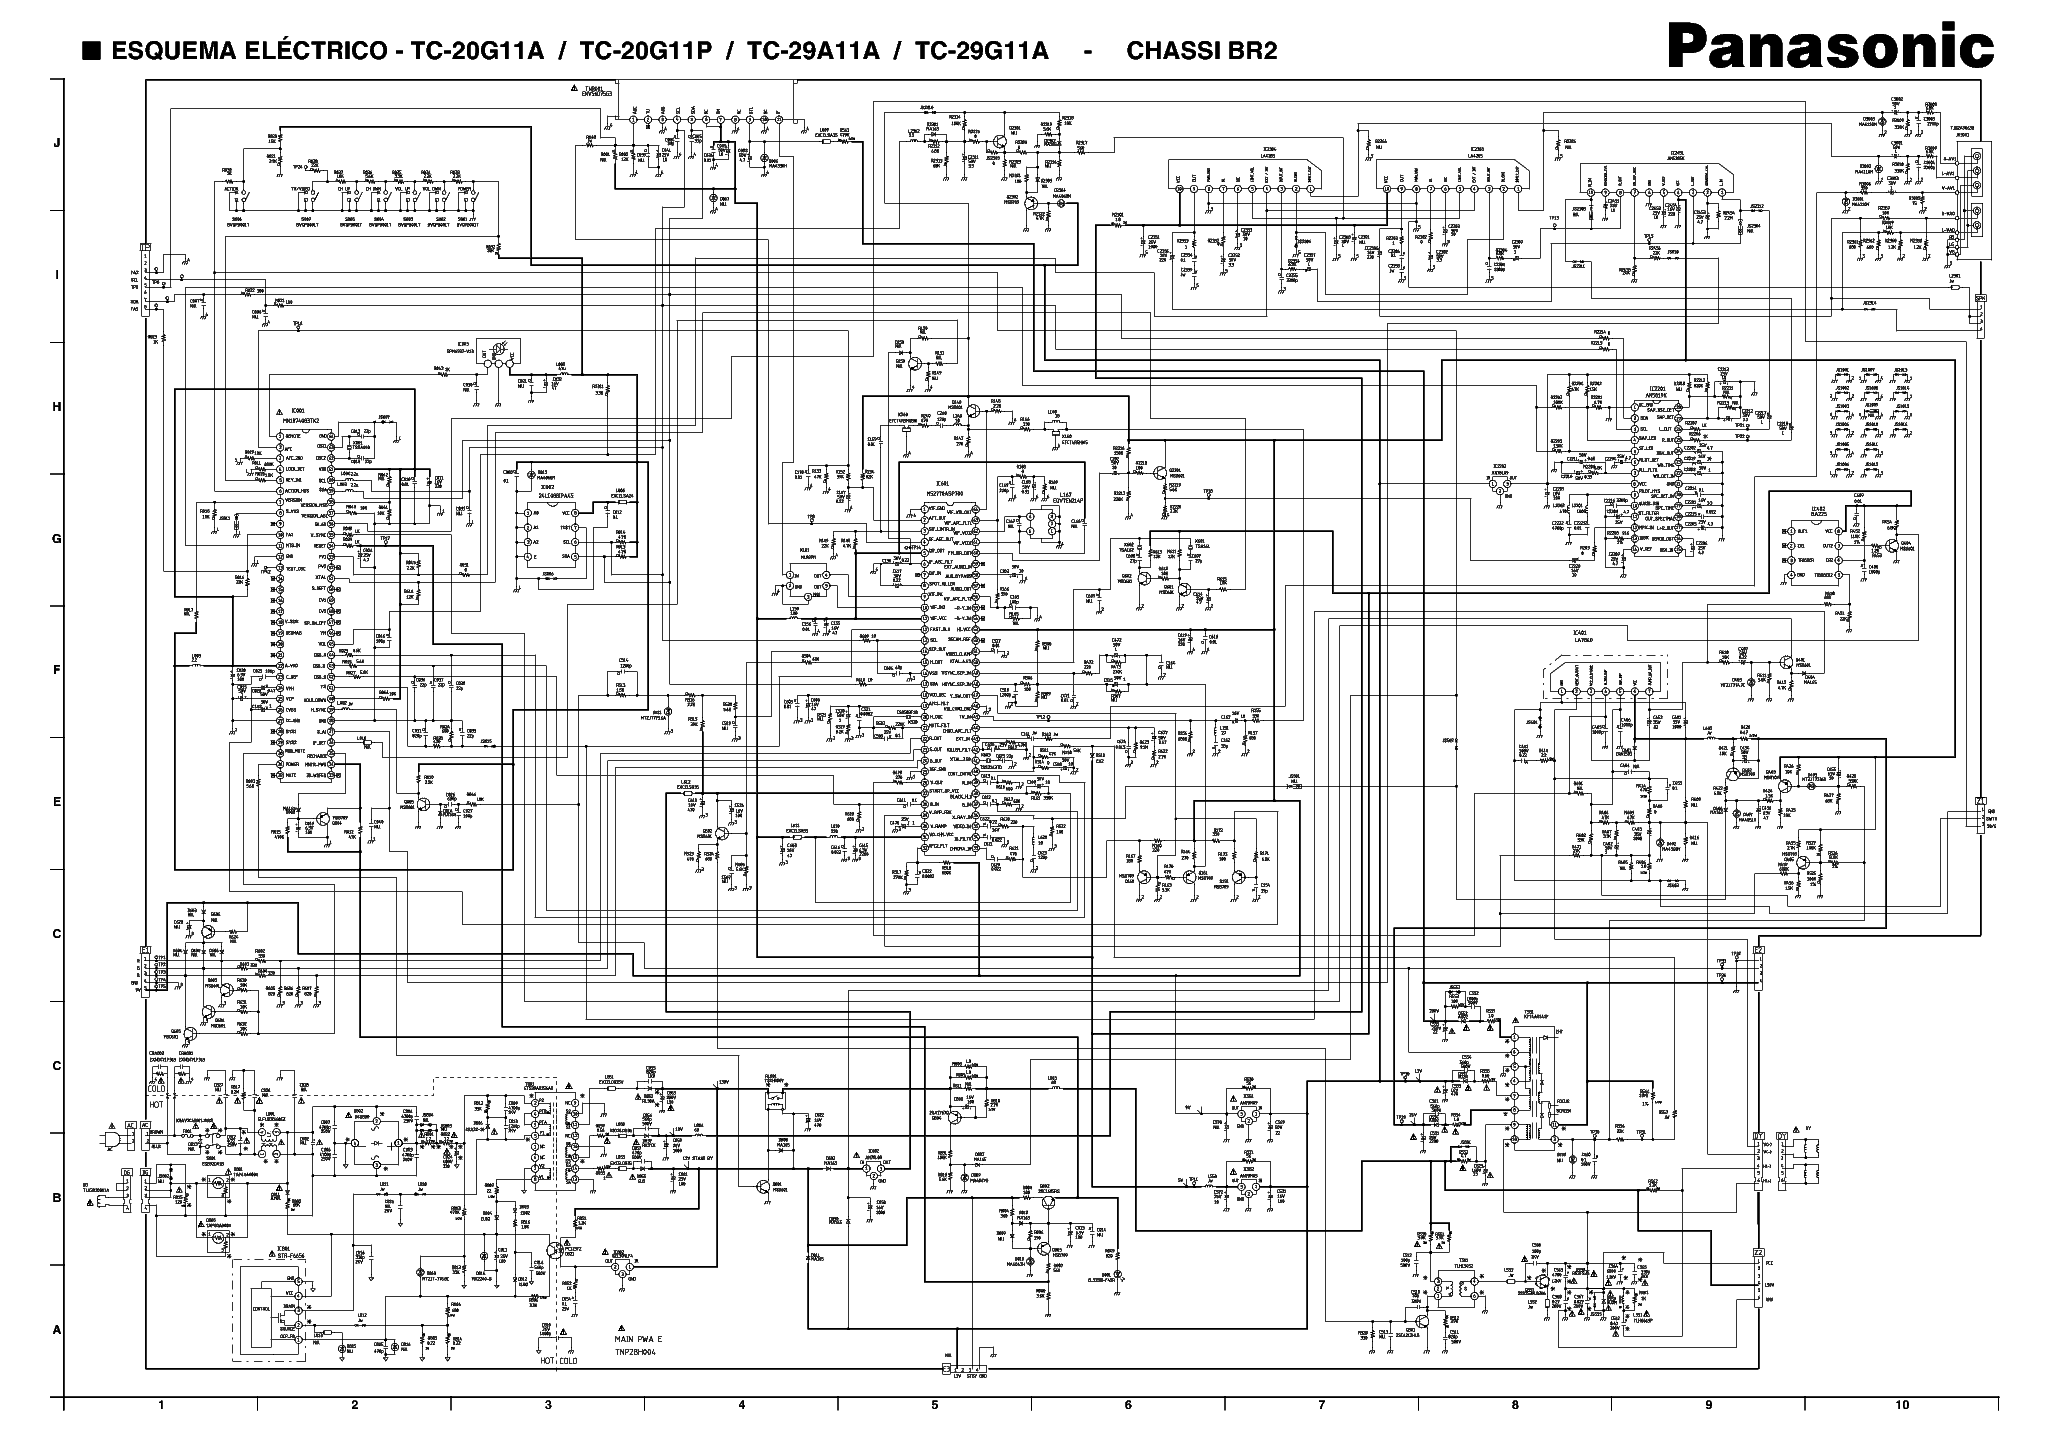 Panasonic Fh700xbt Car Stereo Color Wiring Diagram Diagrams Within Source ·  china tv circuit diagram free schematics wiring diagrams u2022 rh ...